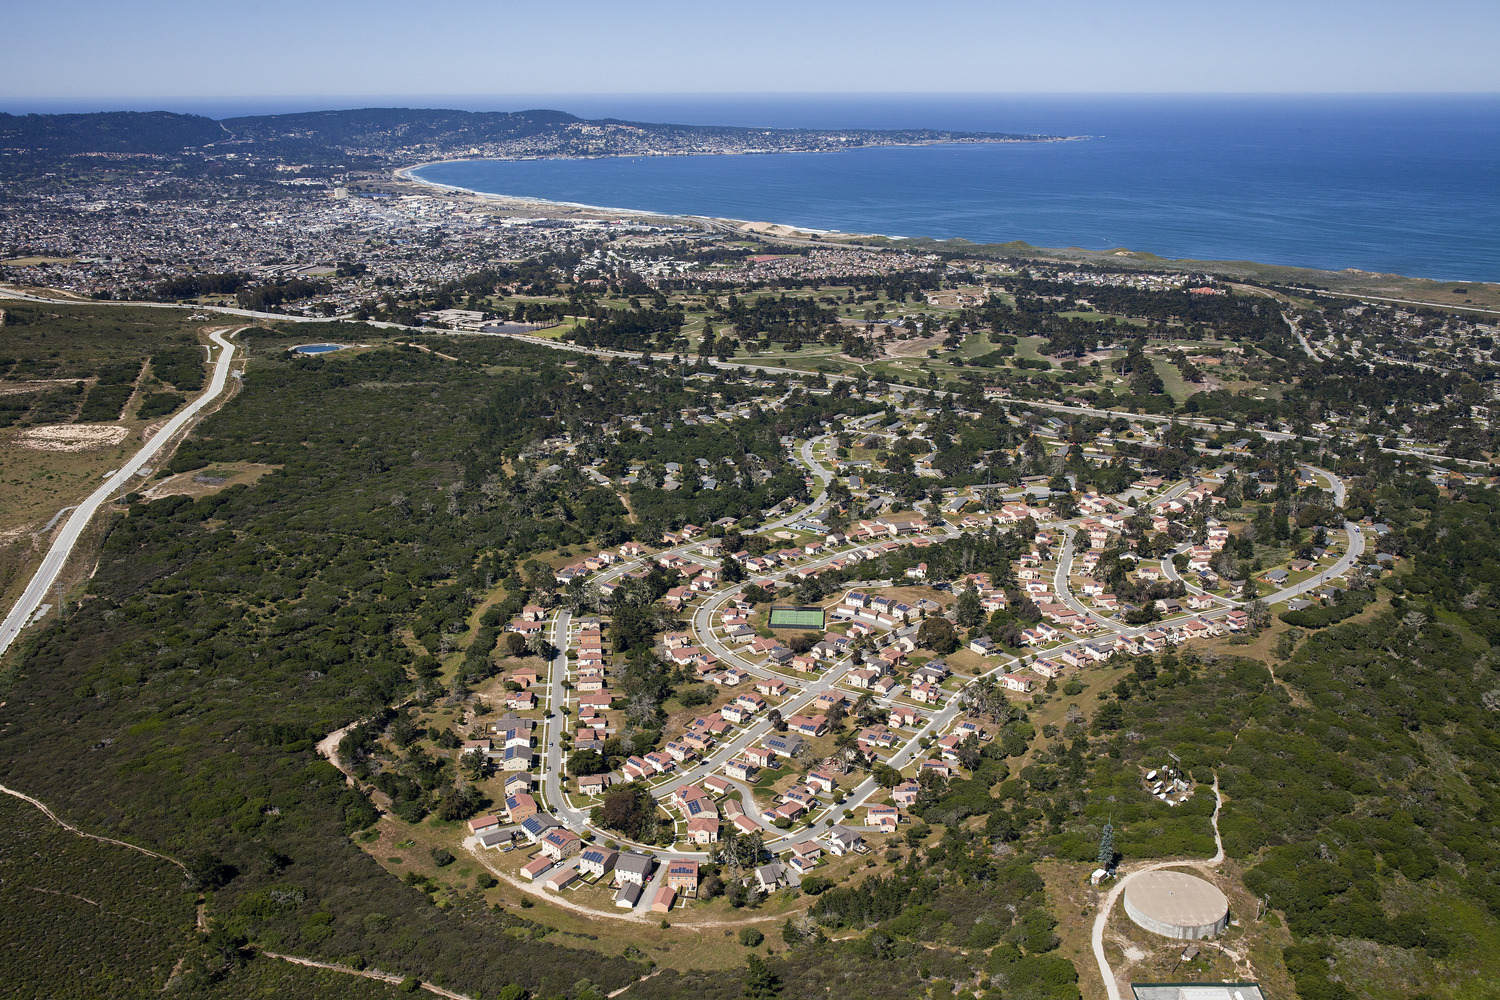 CBG builds Monterey Bay Military Housing, a 2,580 Homes for Army, Navy, and Marine Corps Service Members and Students in Monterey, CA - Image #1